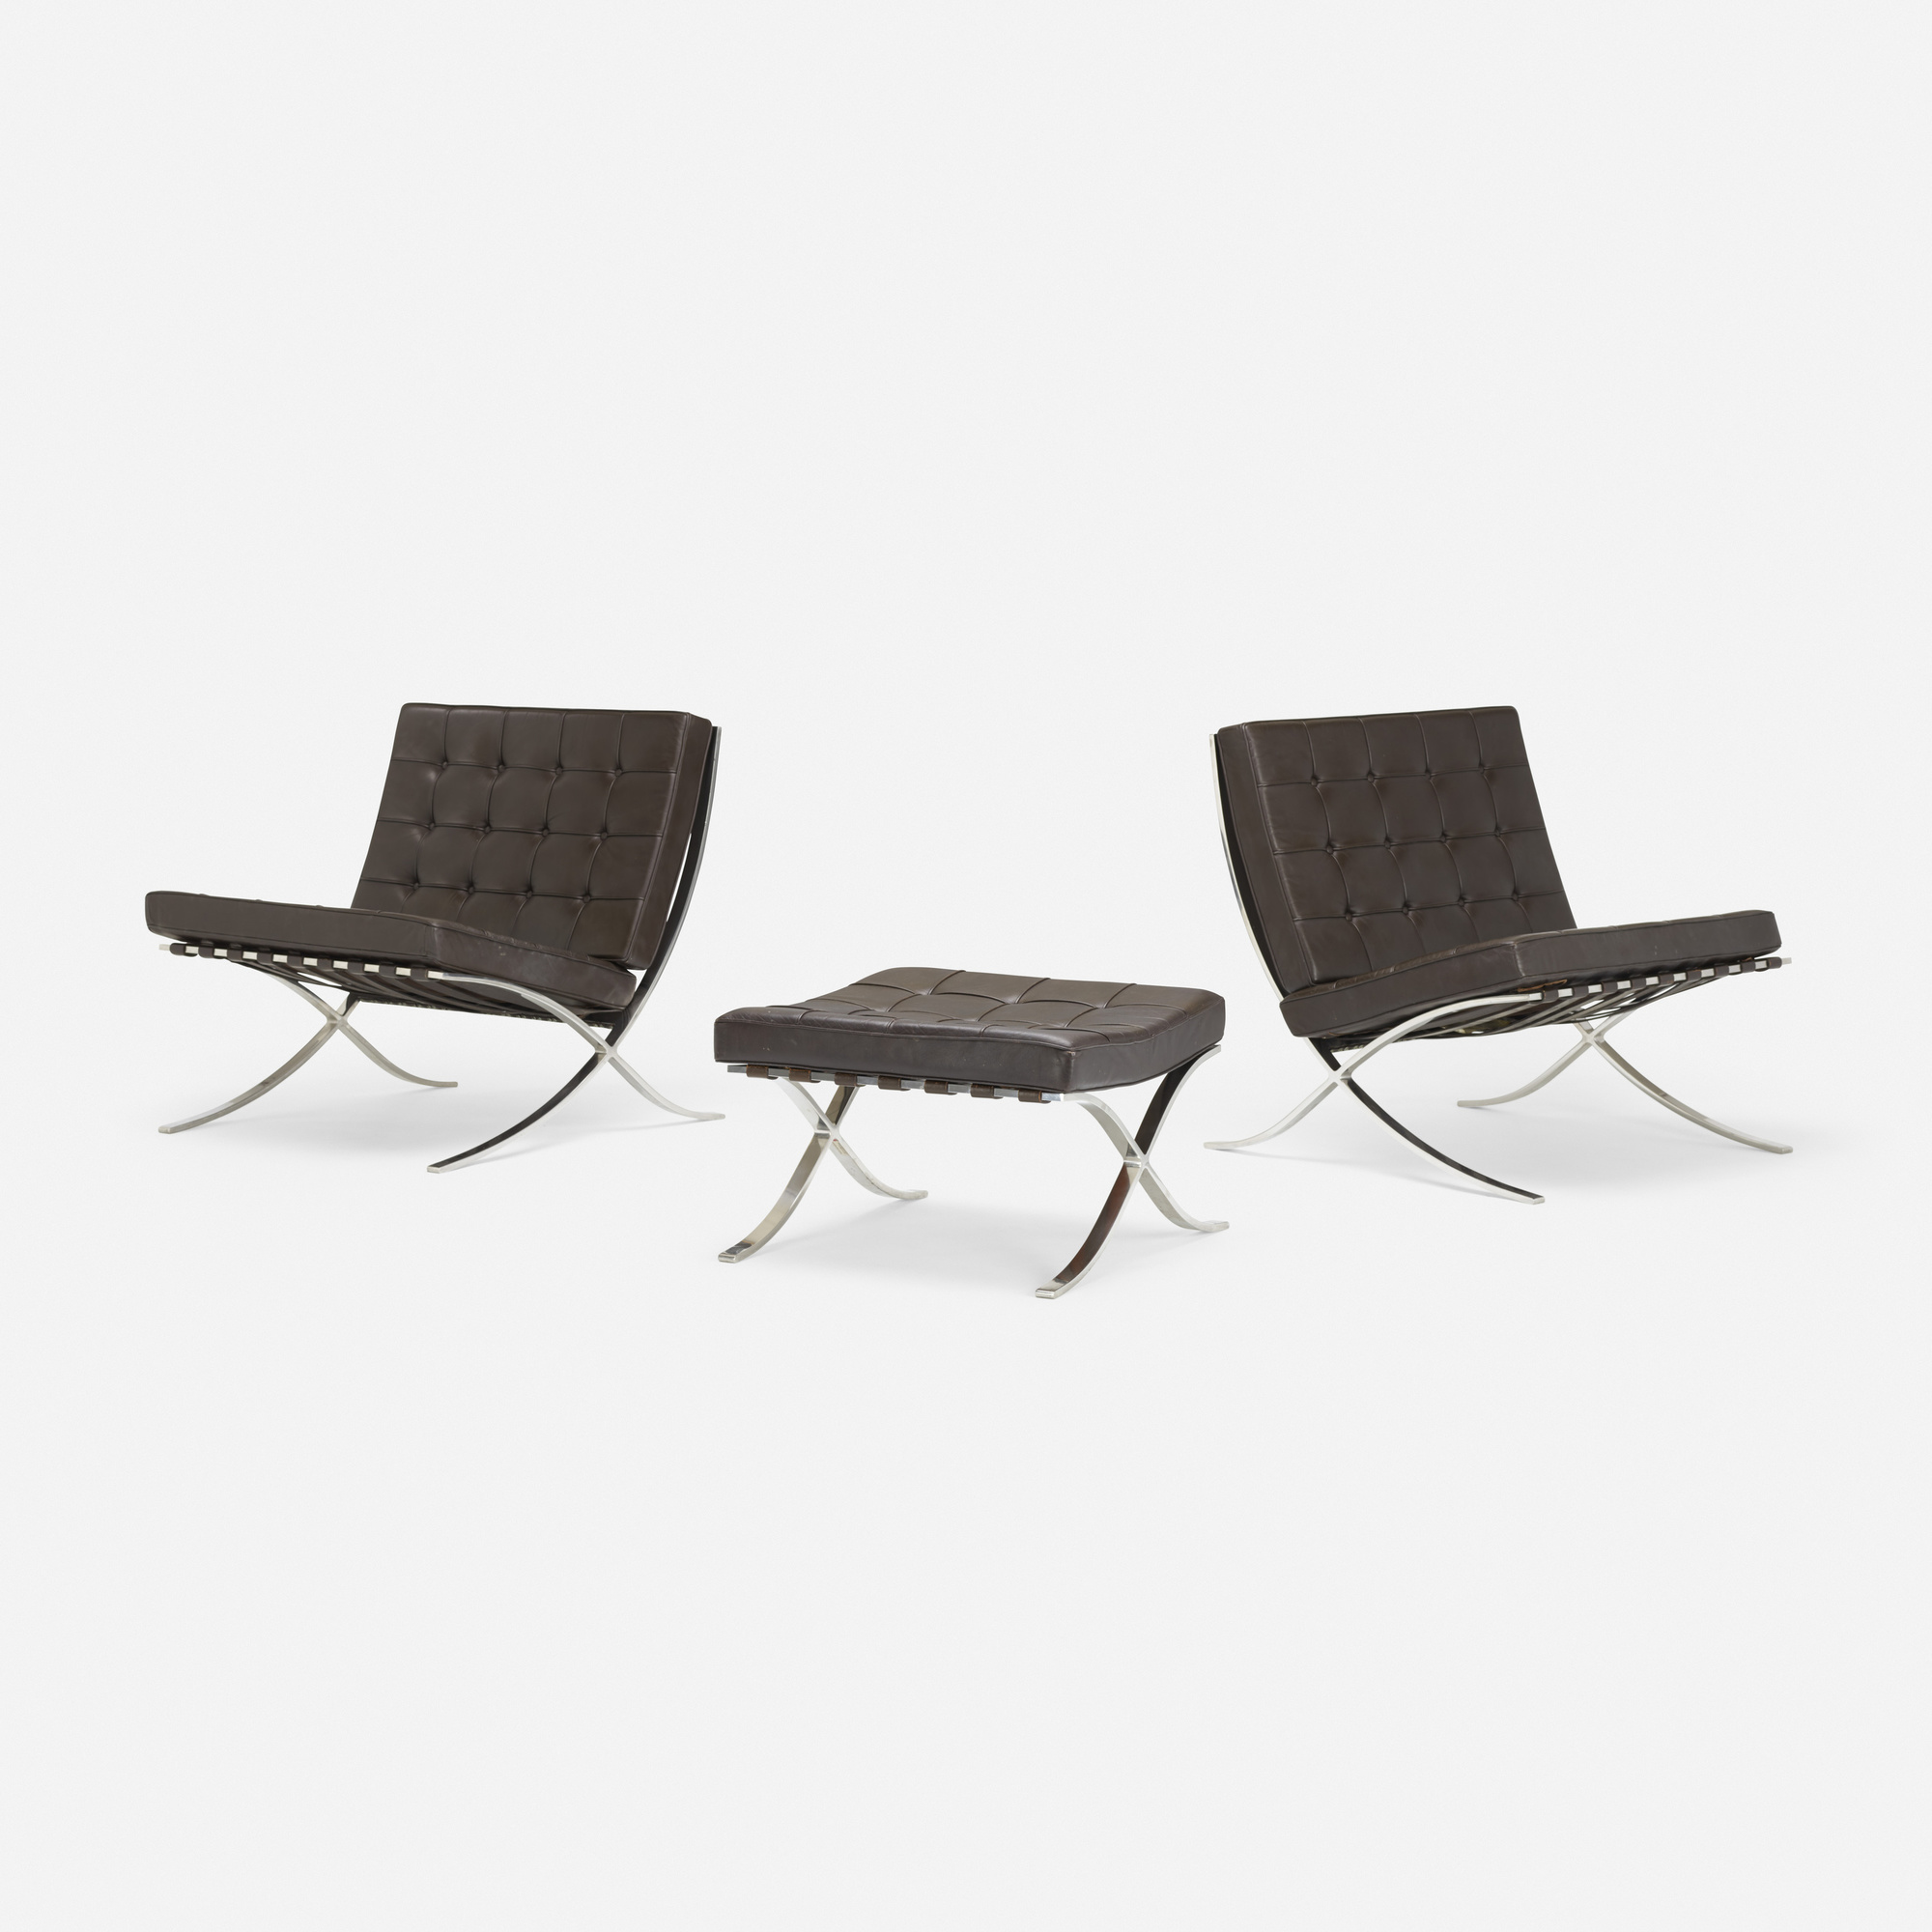 230: Ludwig Mies van der Rohe / pair of Barcelona chairs and ottoman (1 of 3)